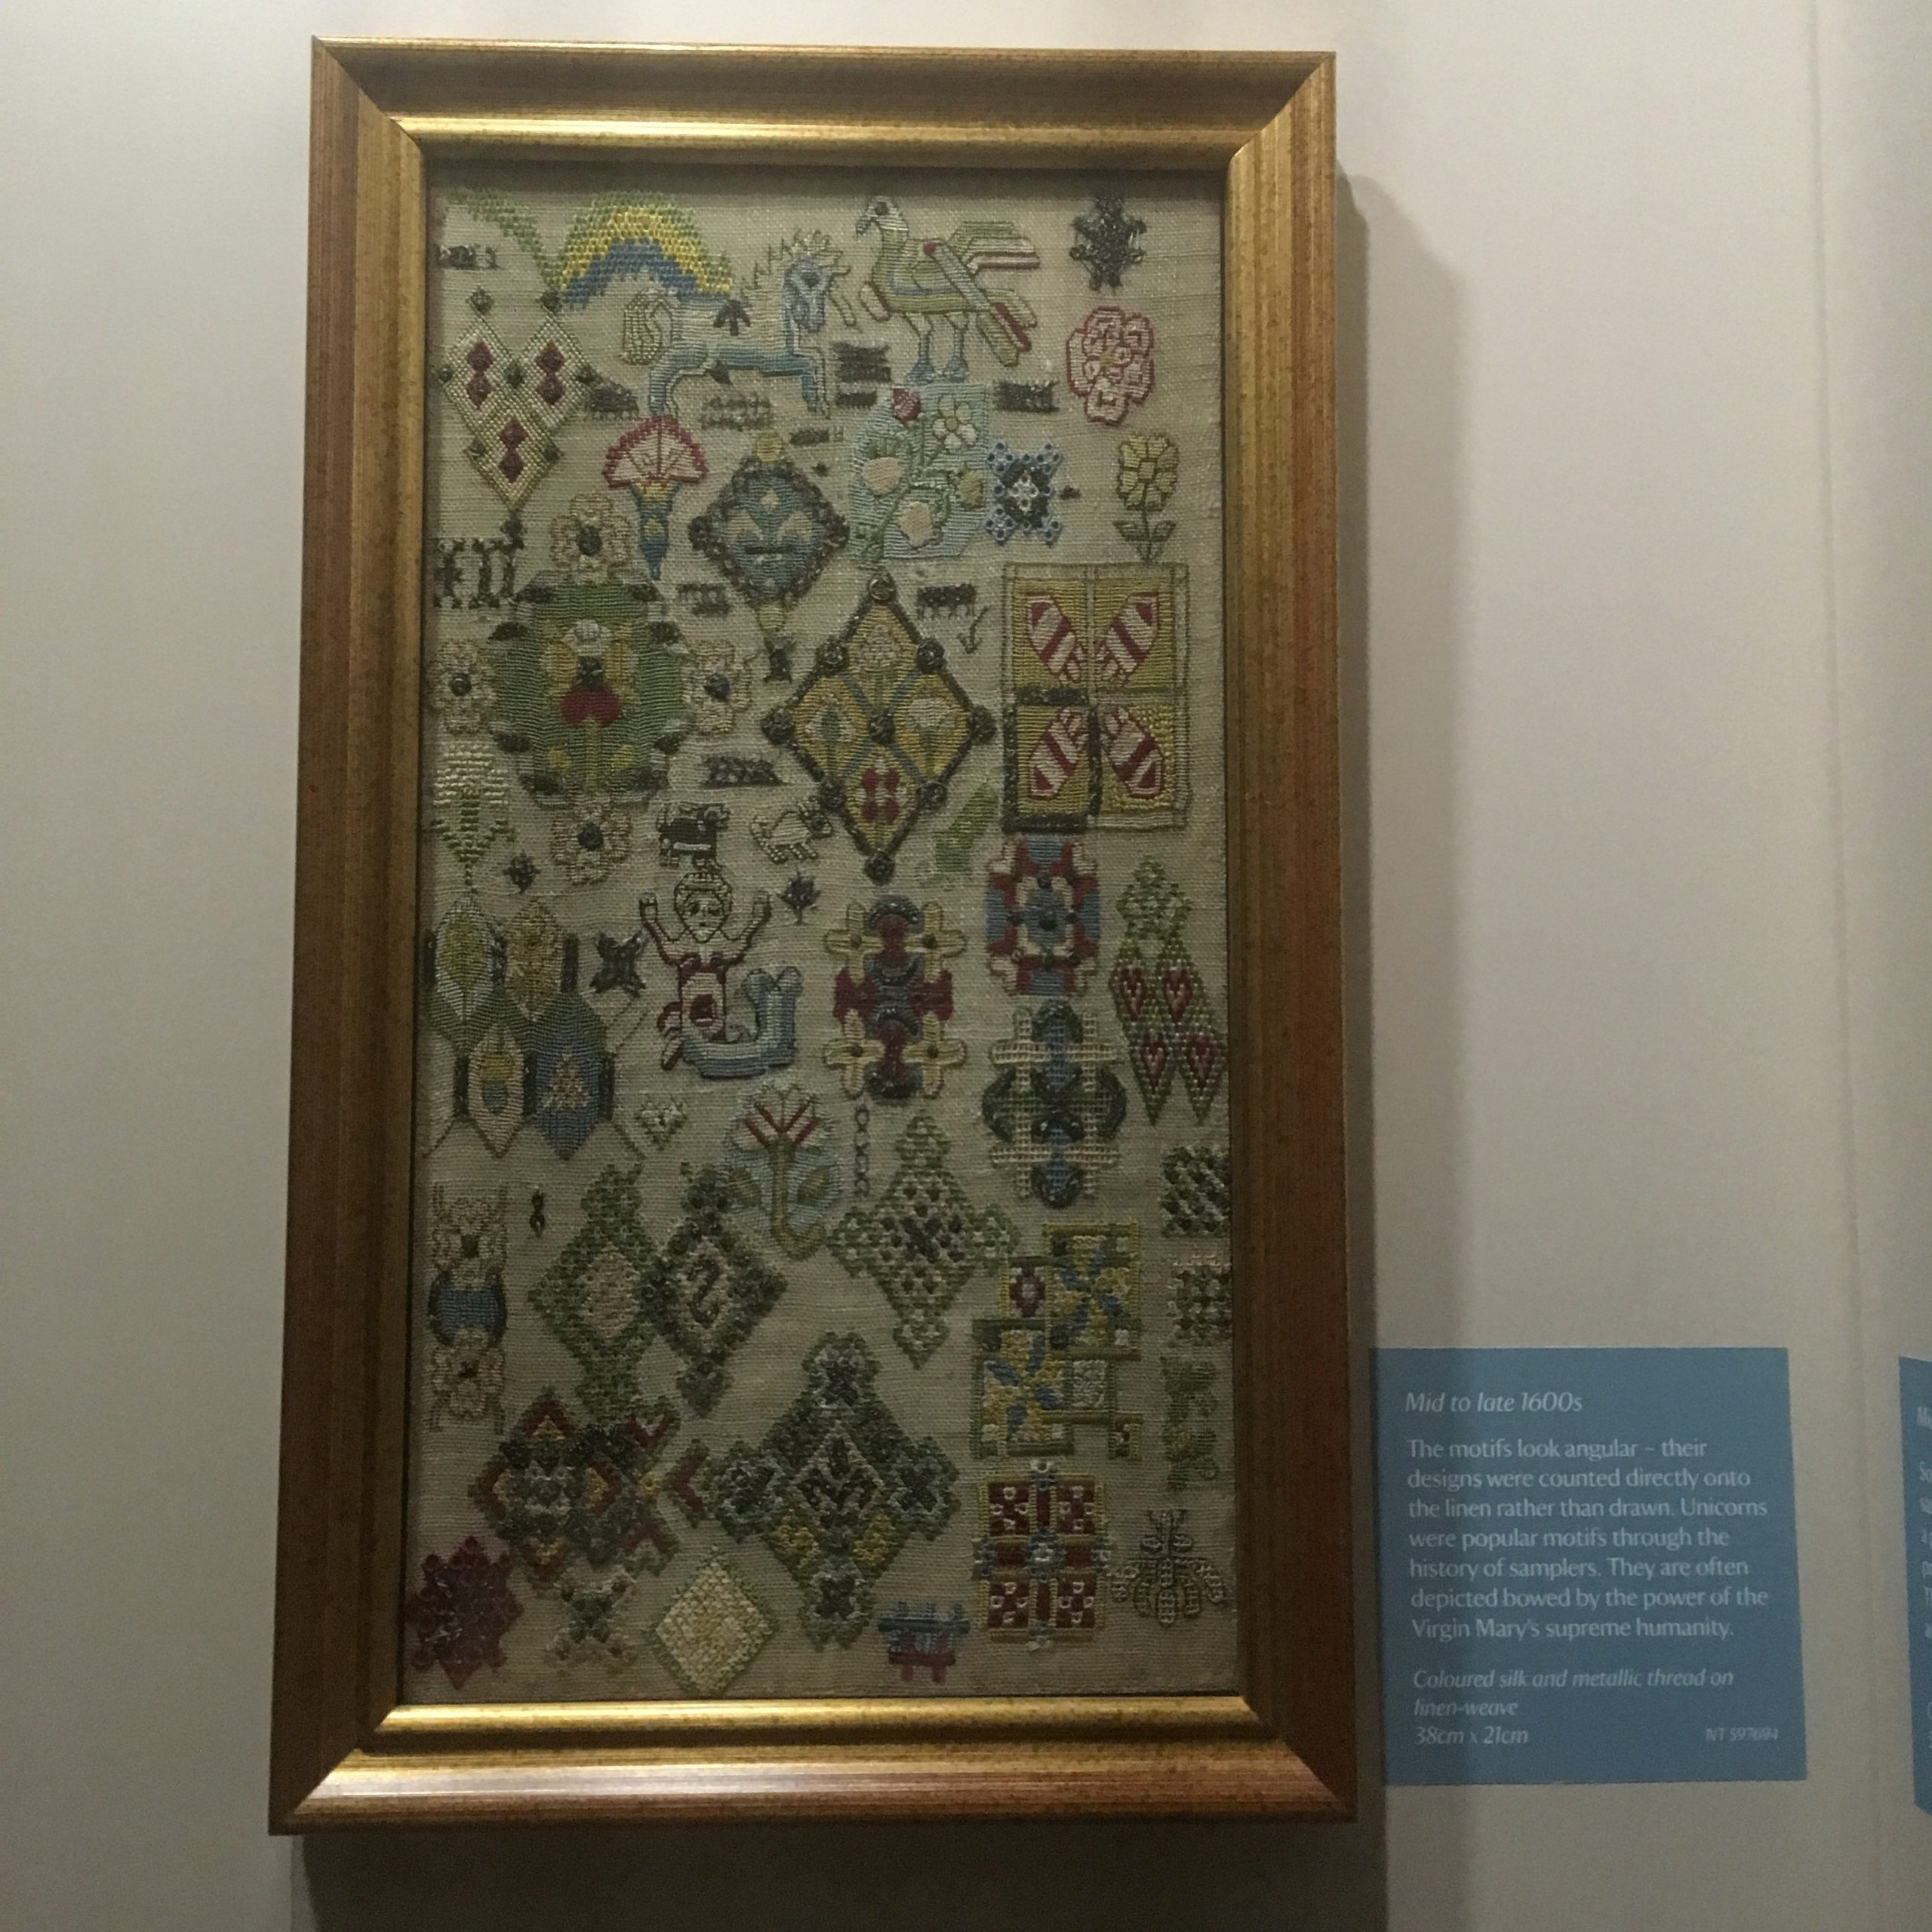 Vintage Embroidery The Goodhart Collection - Historic Houses Montacute House Somerset